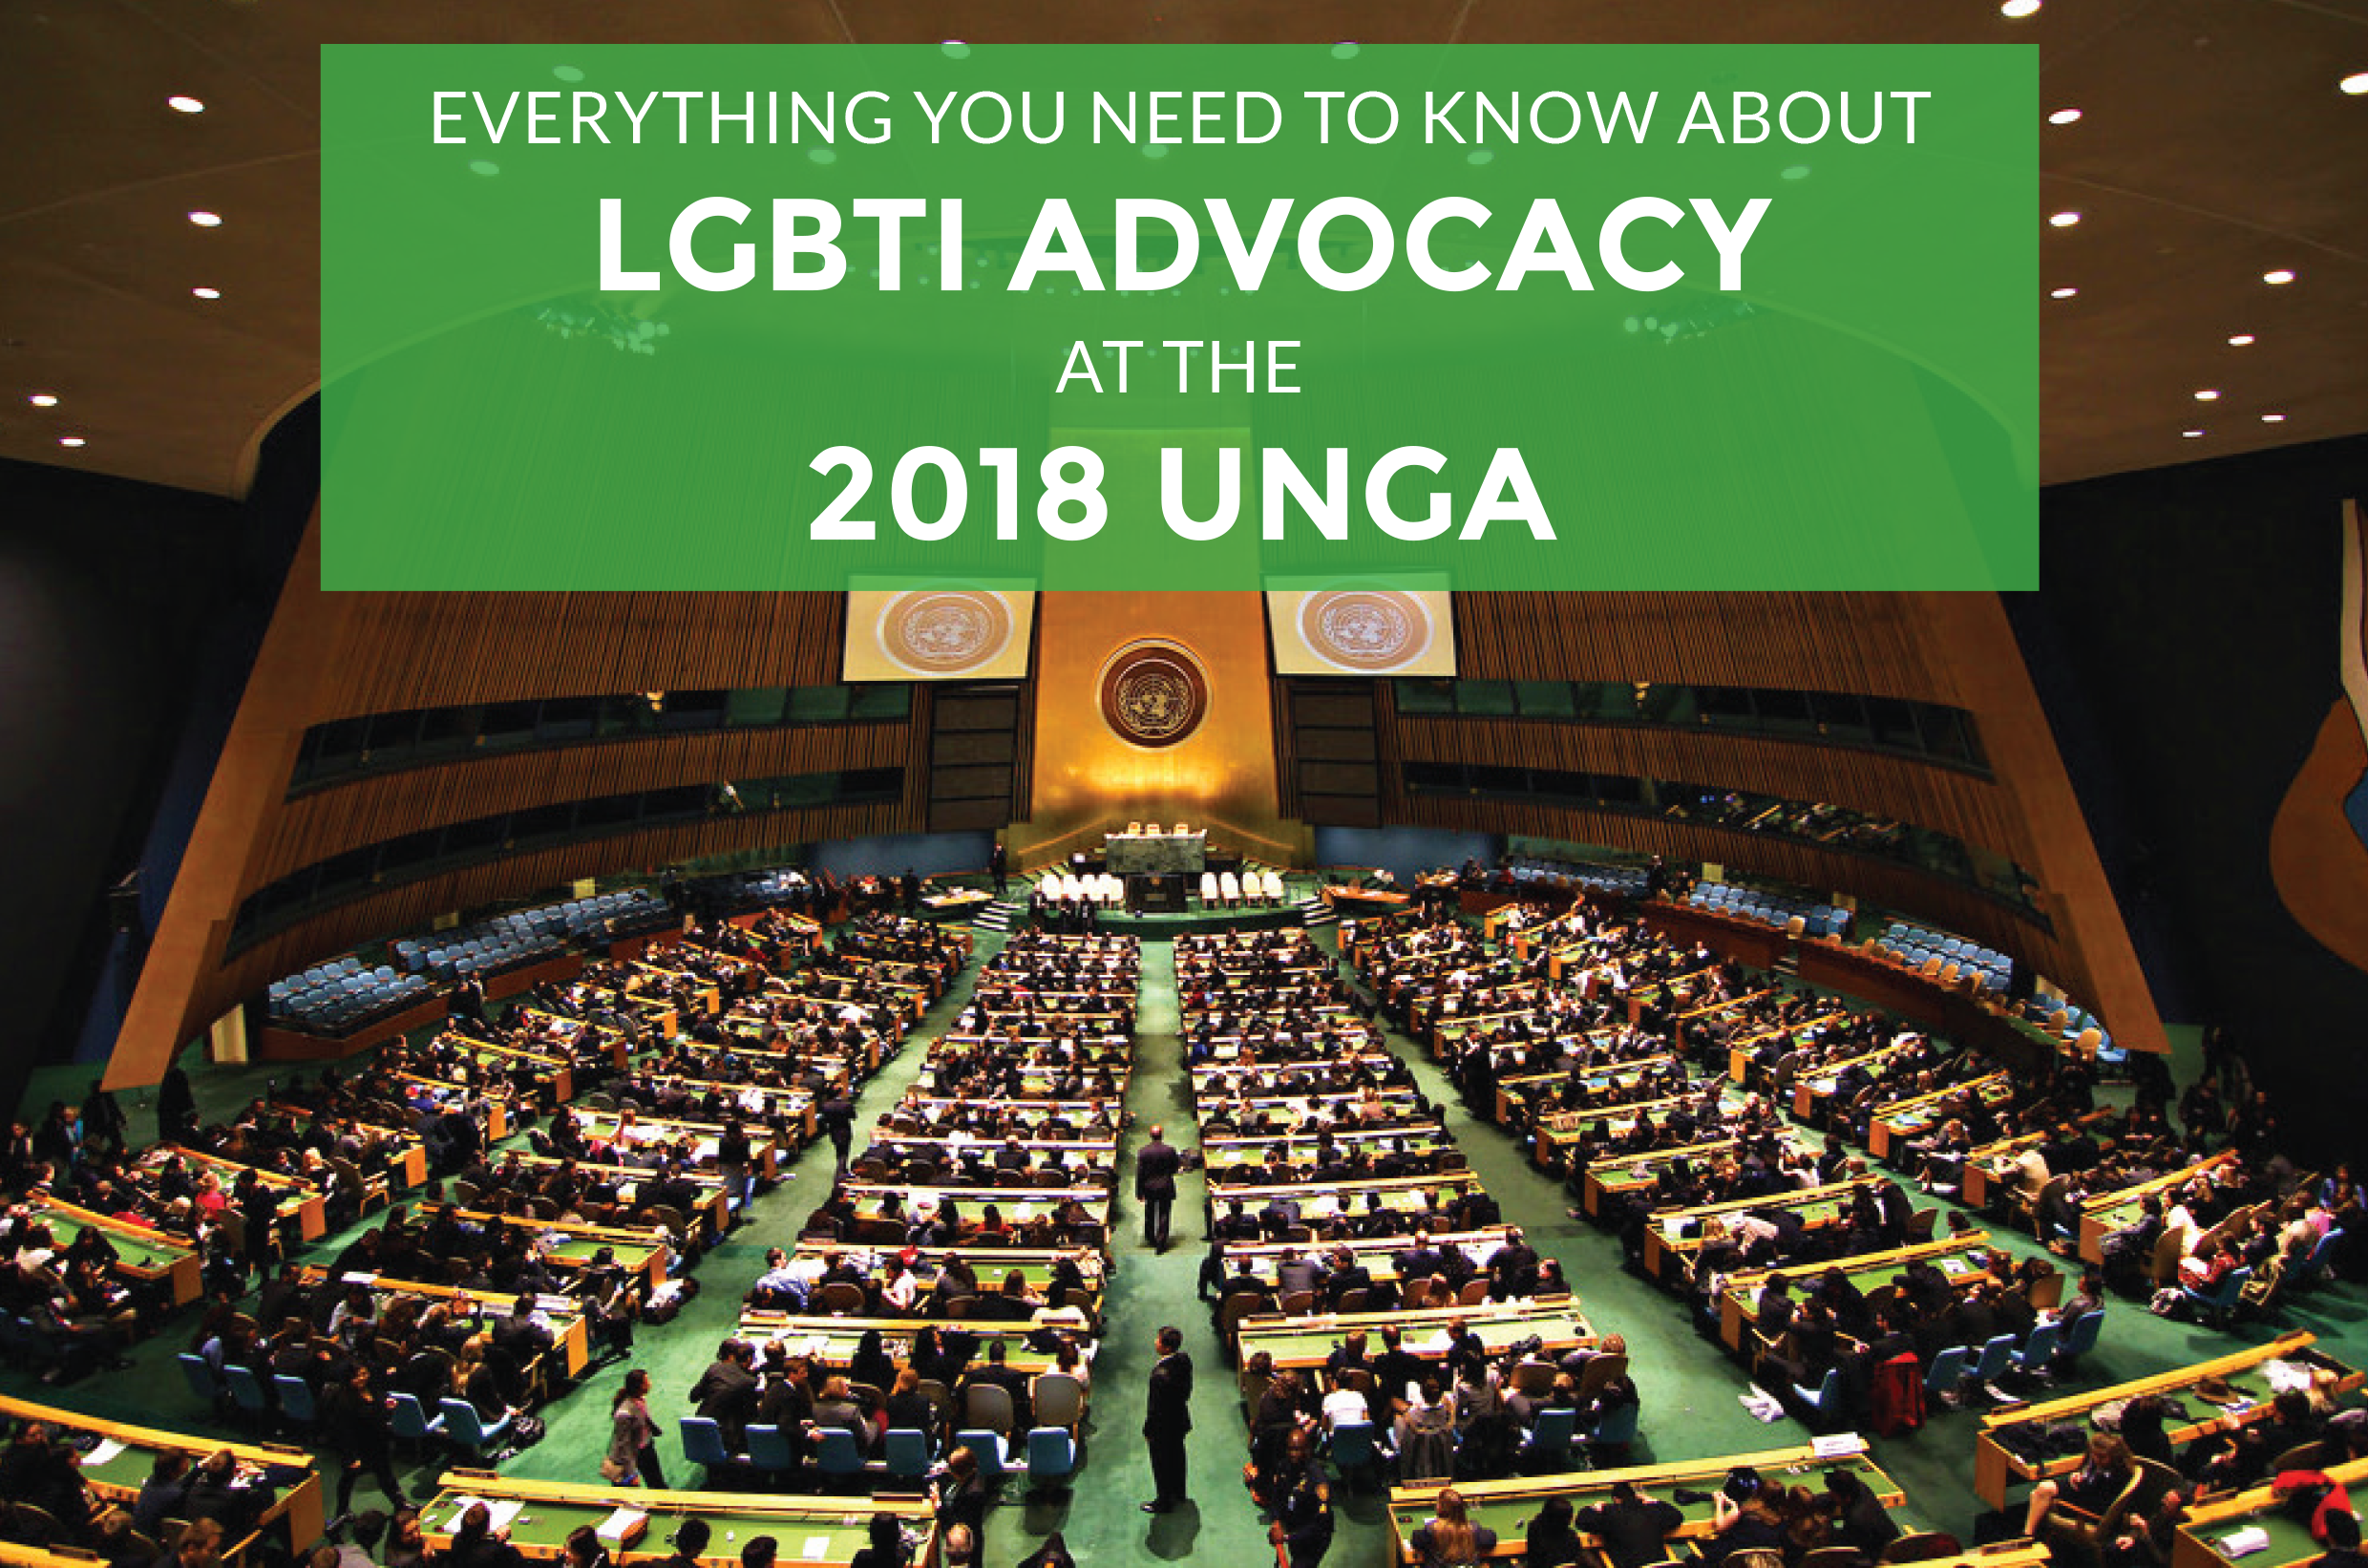 Everything You need To Know About LGBTI Advocacy At The 2018 UNGA